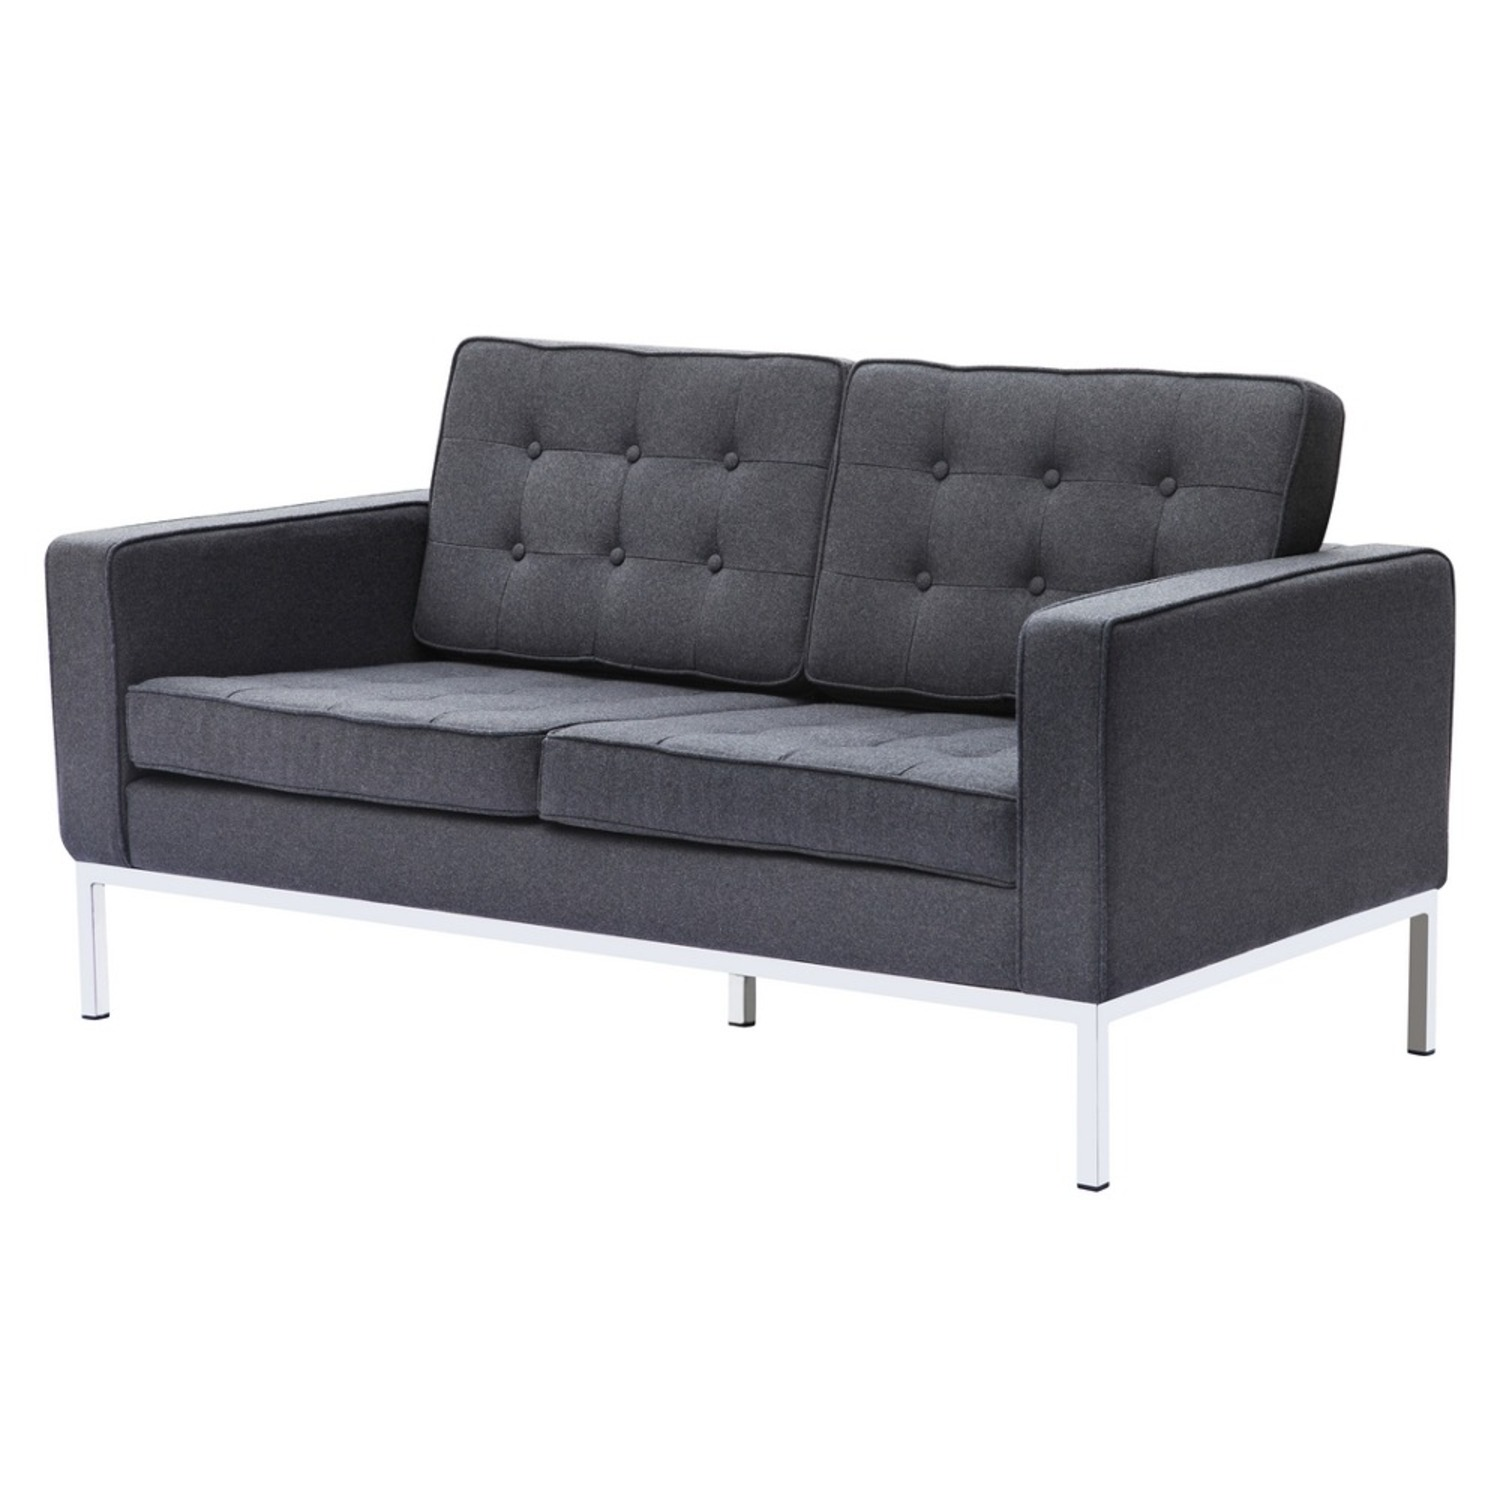 Contemporary Loveseat In Gray Wool Fabric - image-4